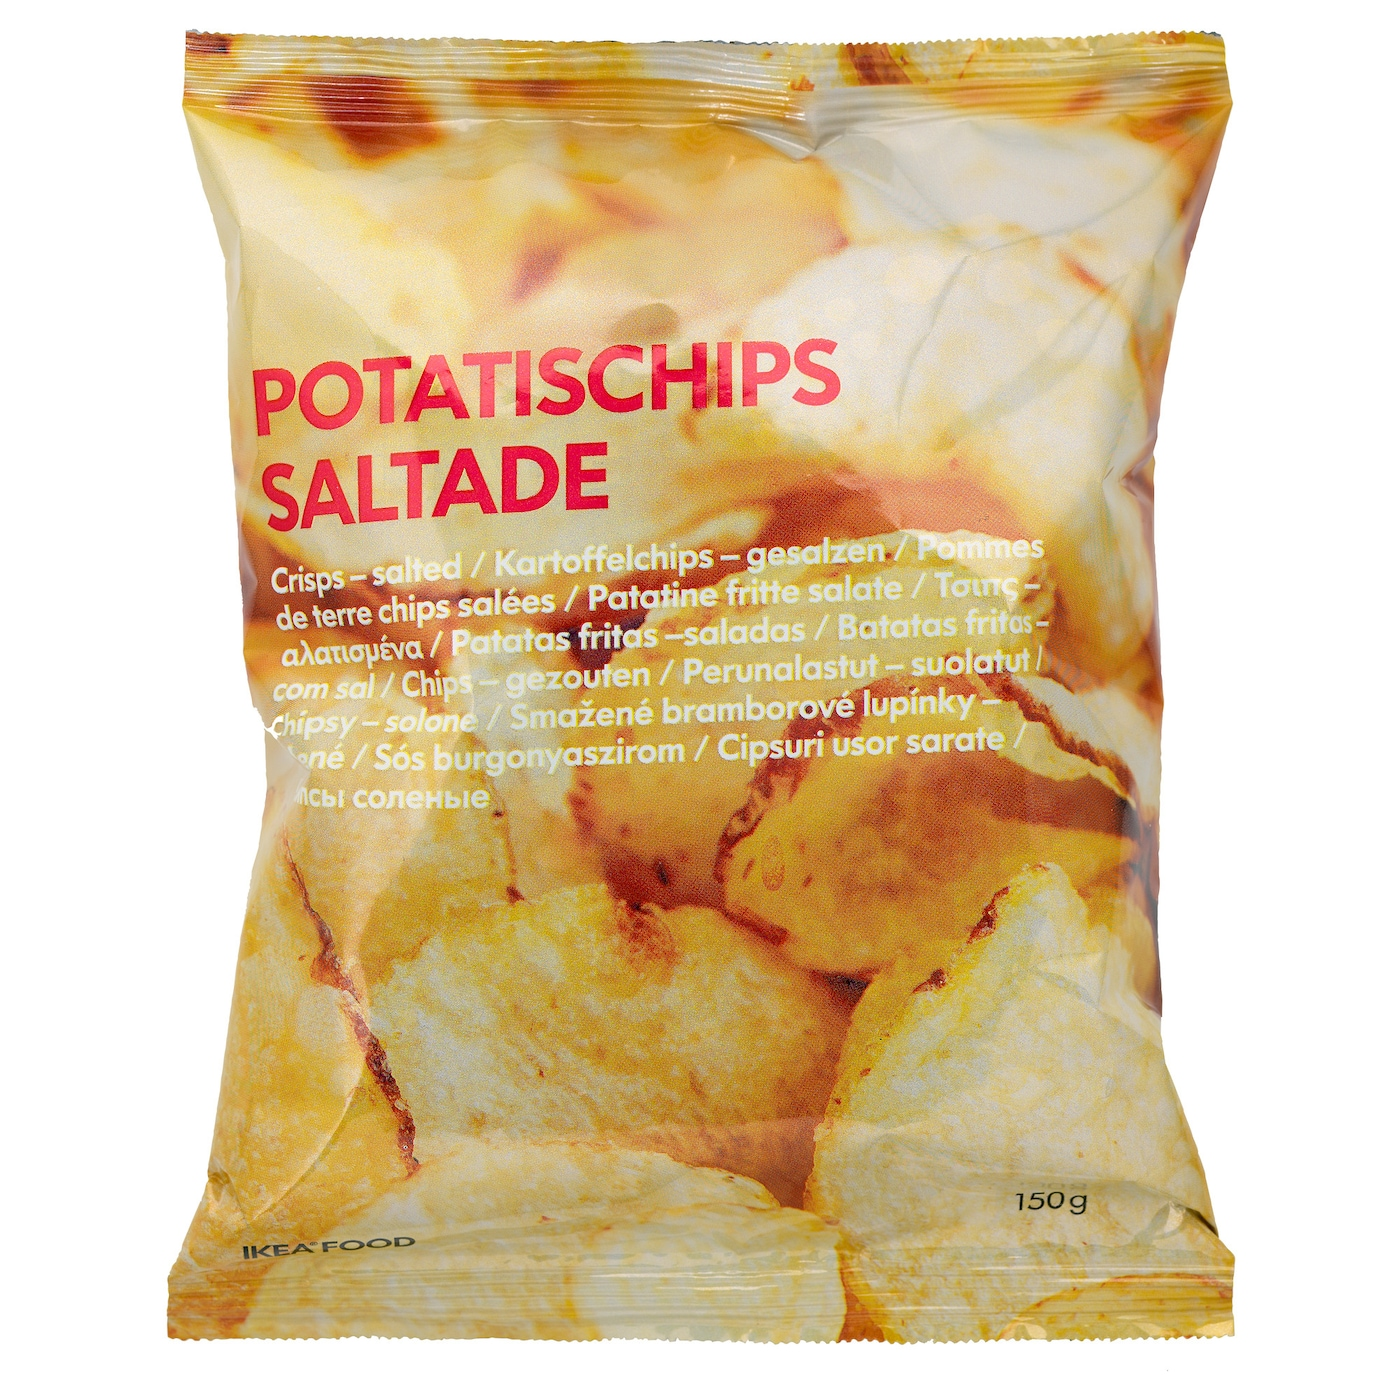 IKEA POTATISCHIPS SALTADE salted potato crisps